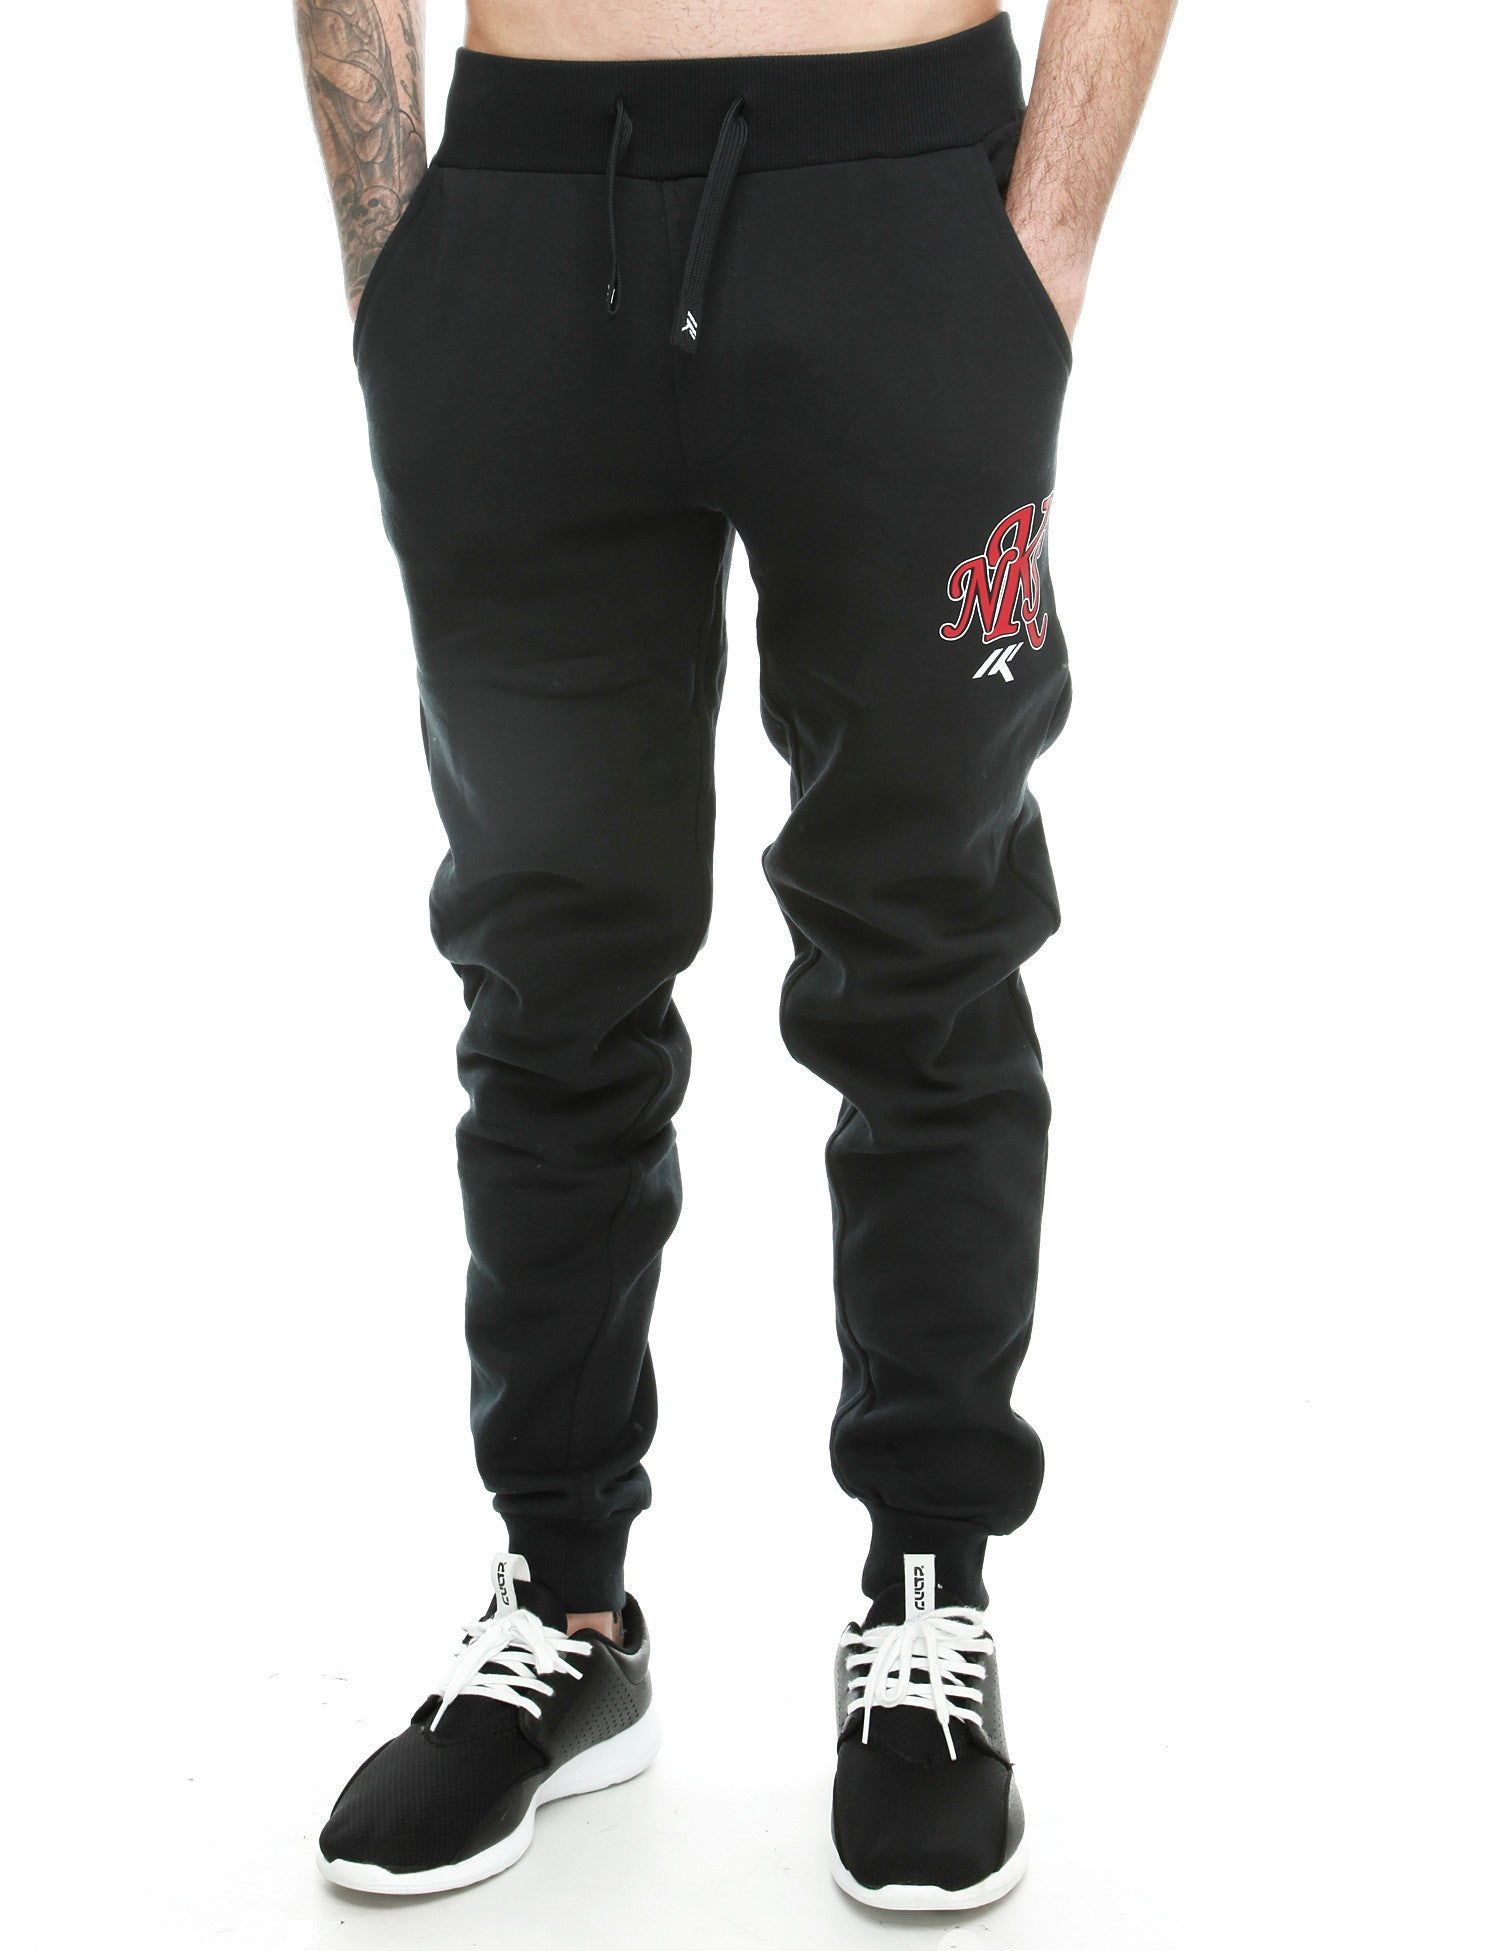 Nickleson Walthamstow Sweatpant RSK00032 Anthracite Black